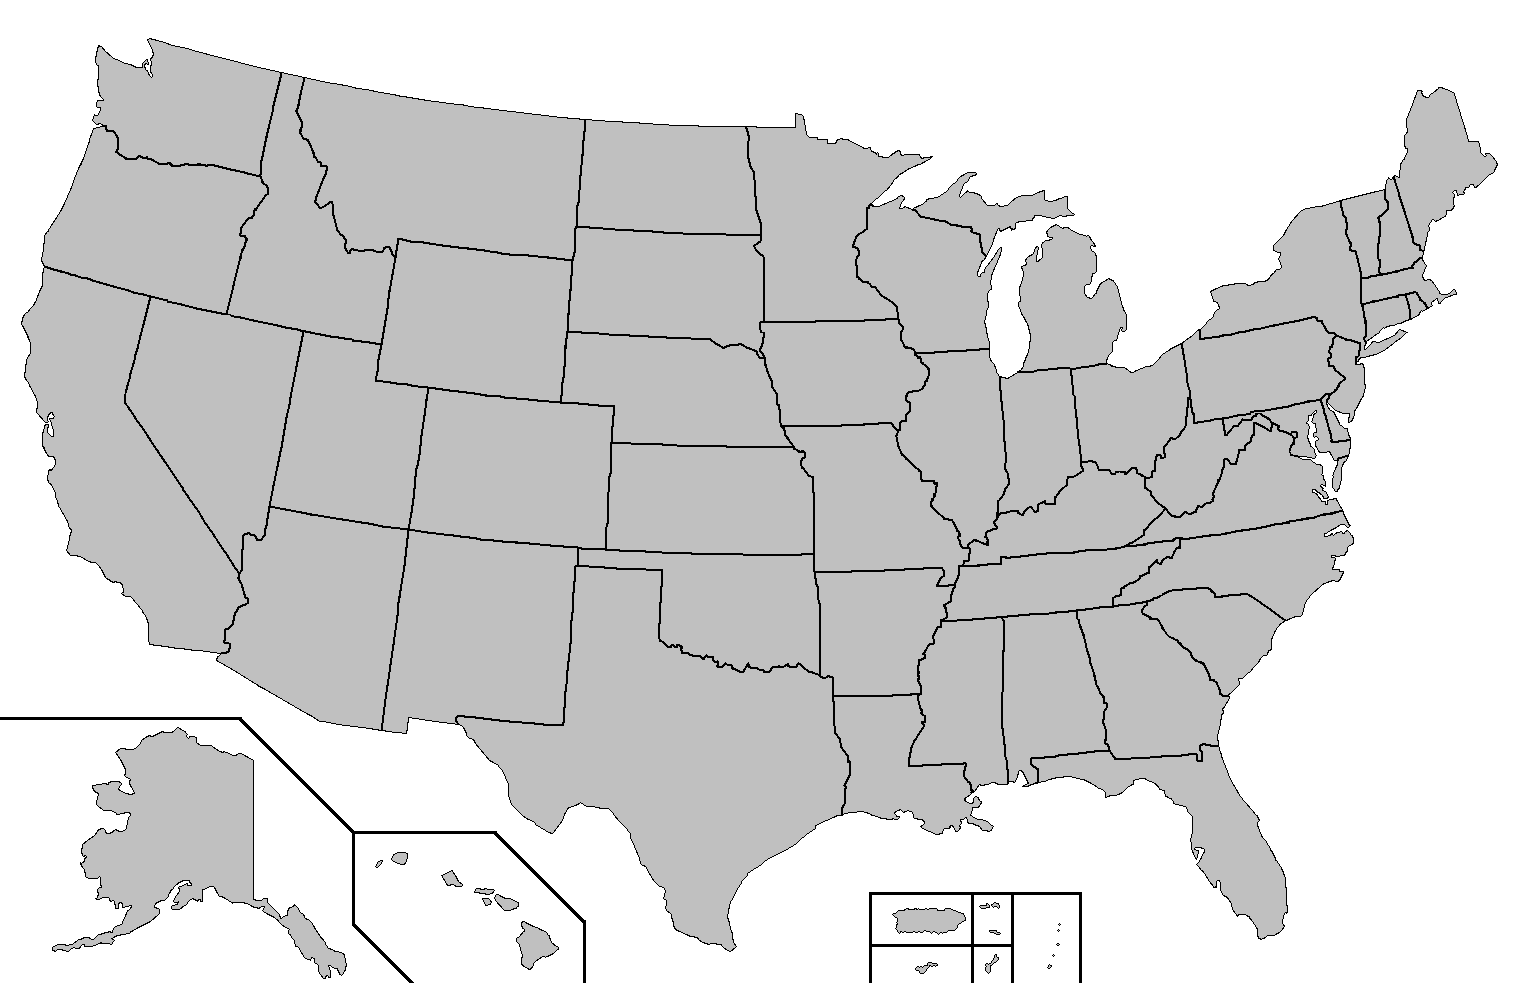 File:Blank map of the United States.PNG   Wikimedia Commons